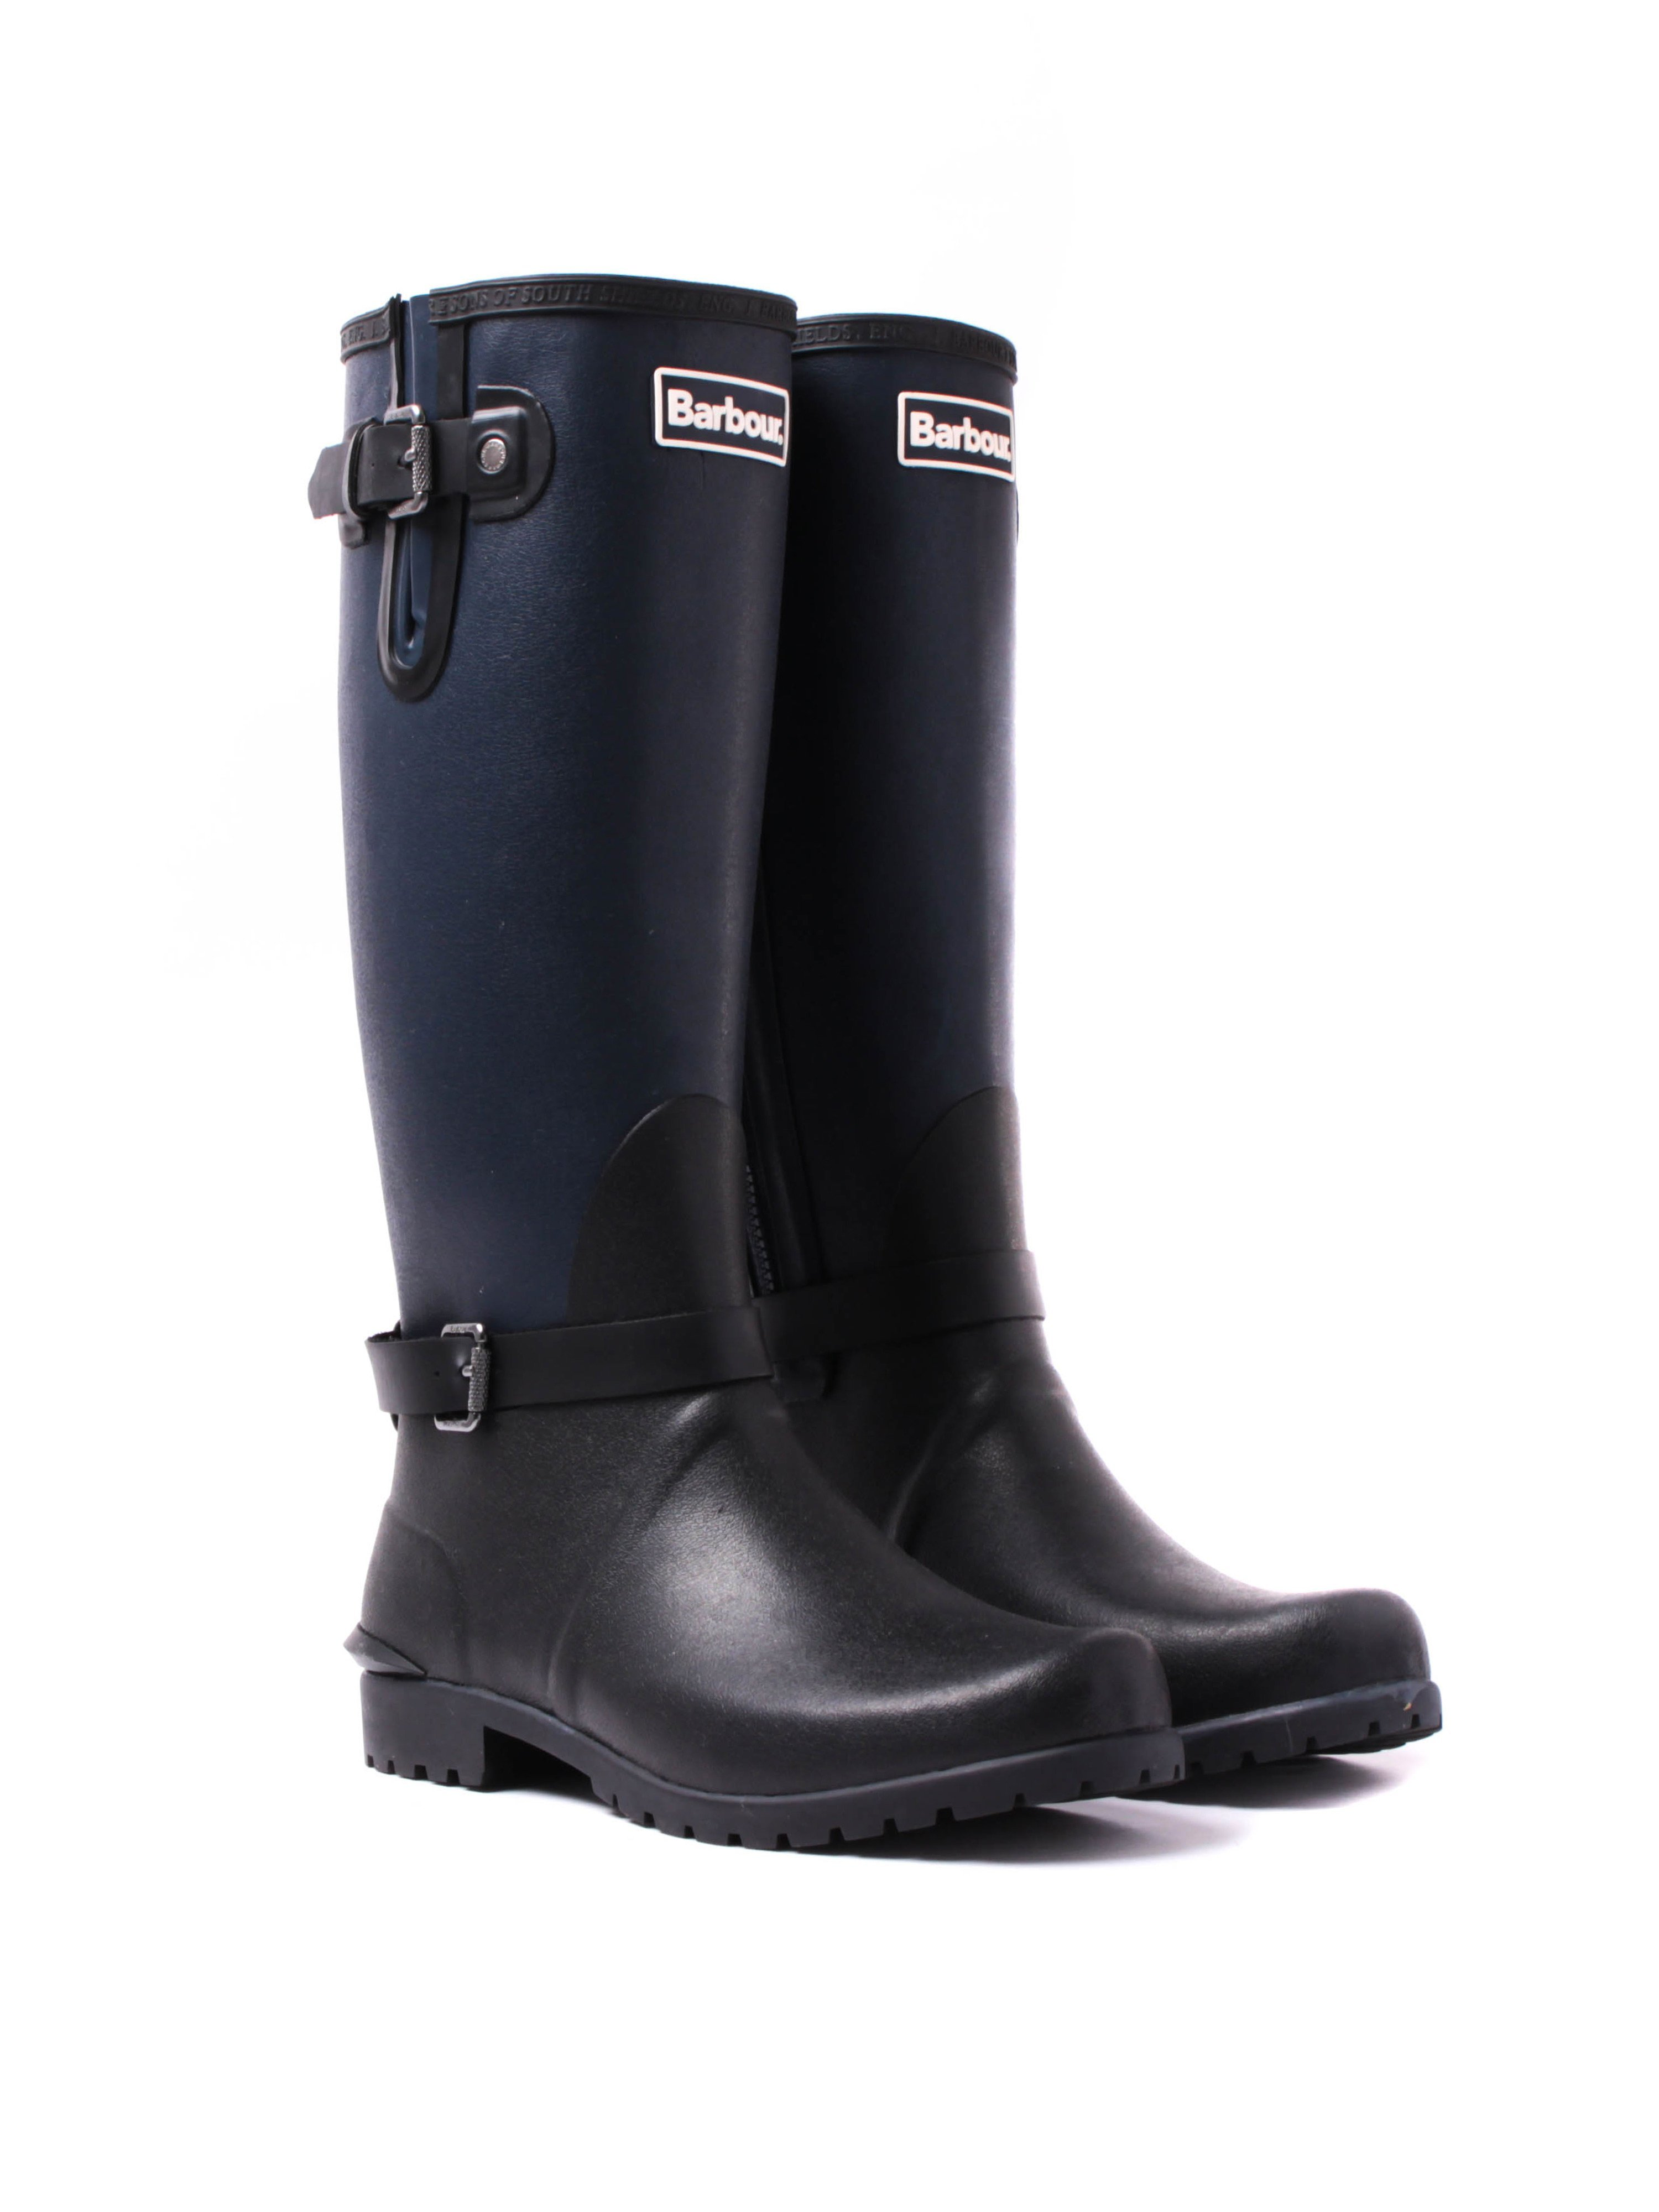 Barbour Women's Cleveland Motorbike Style Knee High Wellington Boots - Navy & Black